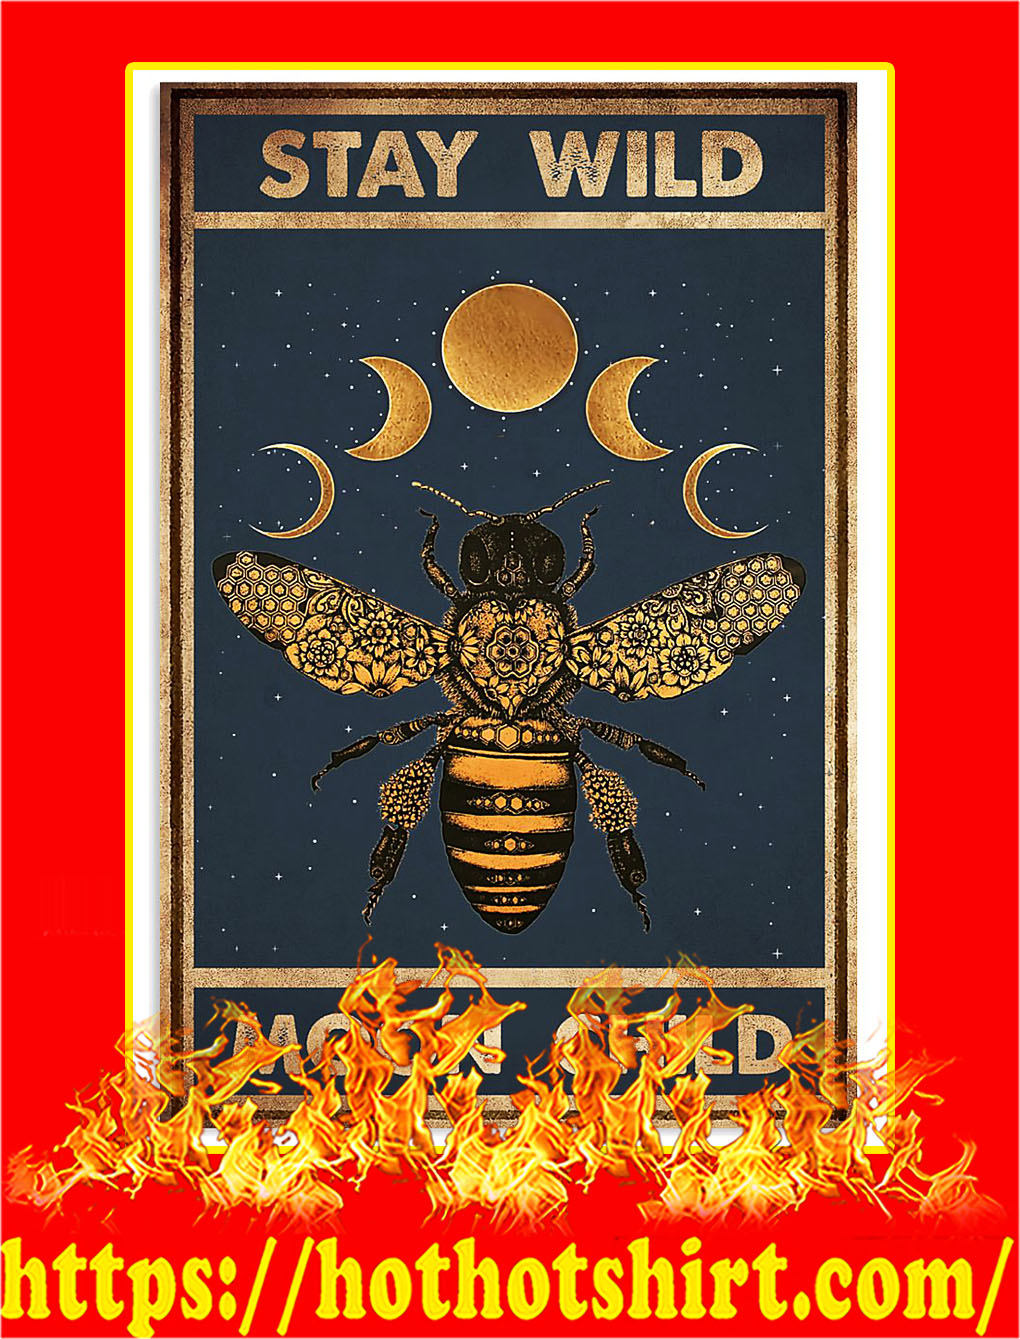 Stay wild moon child bee poster - A4